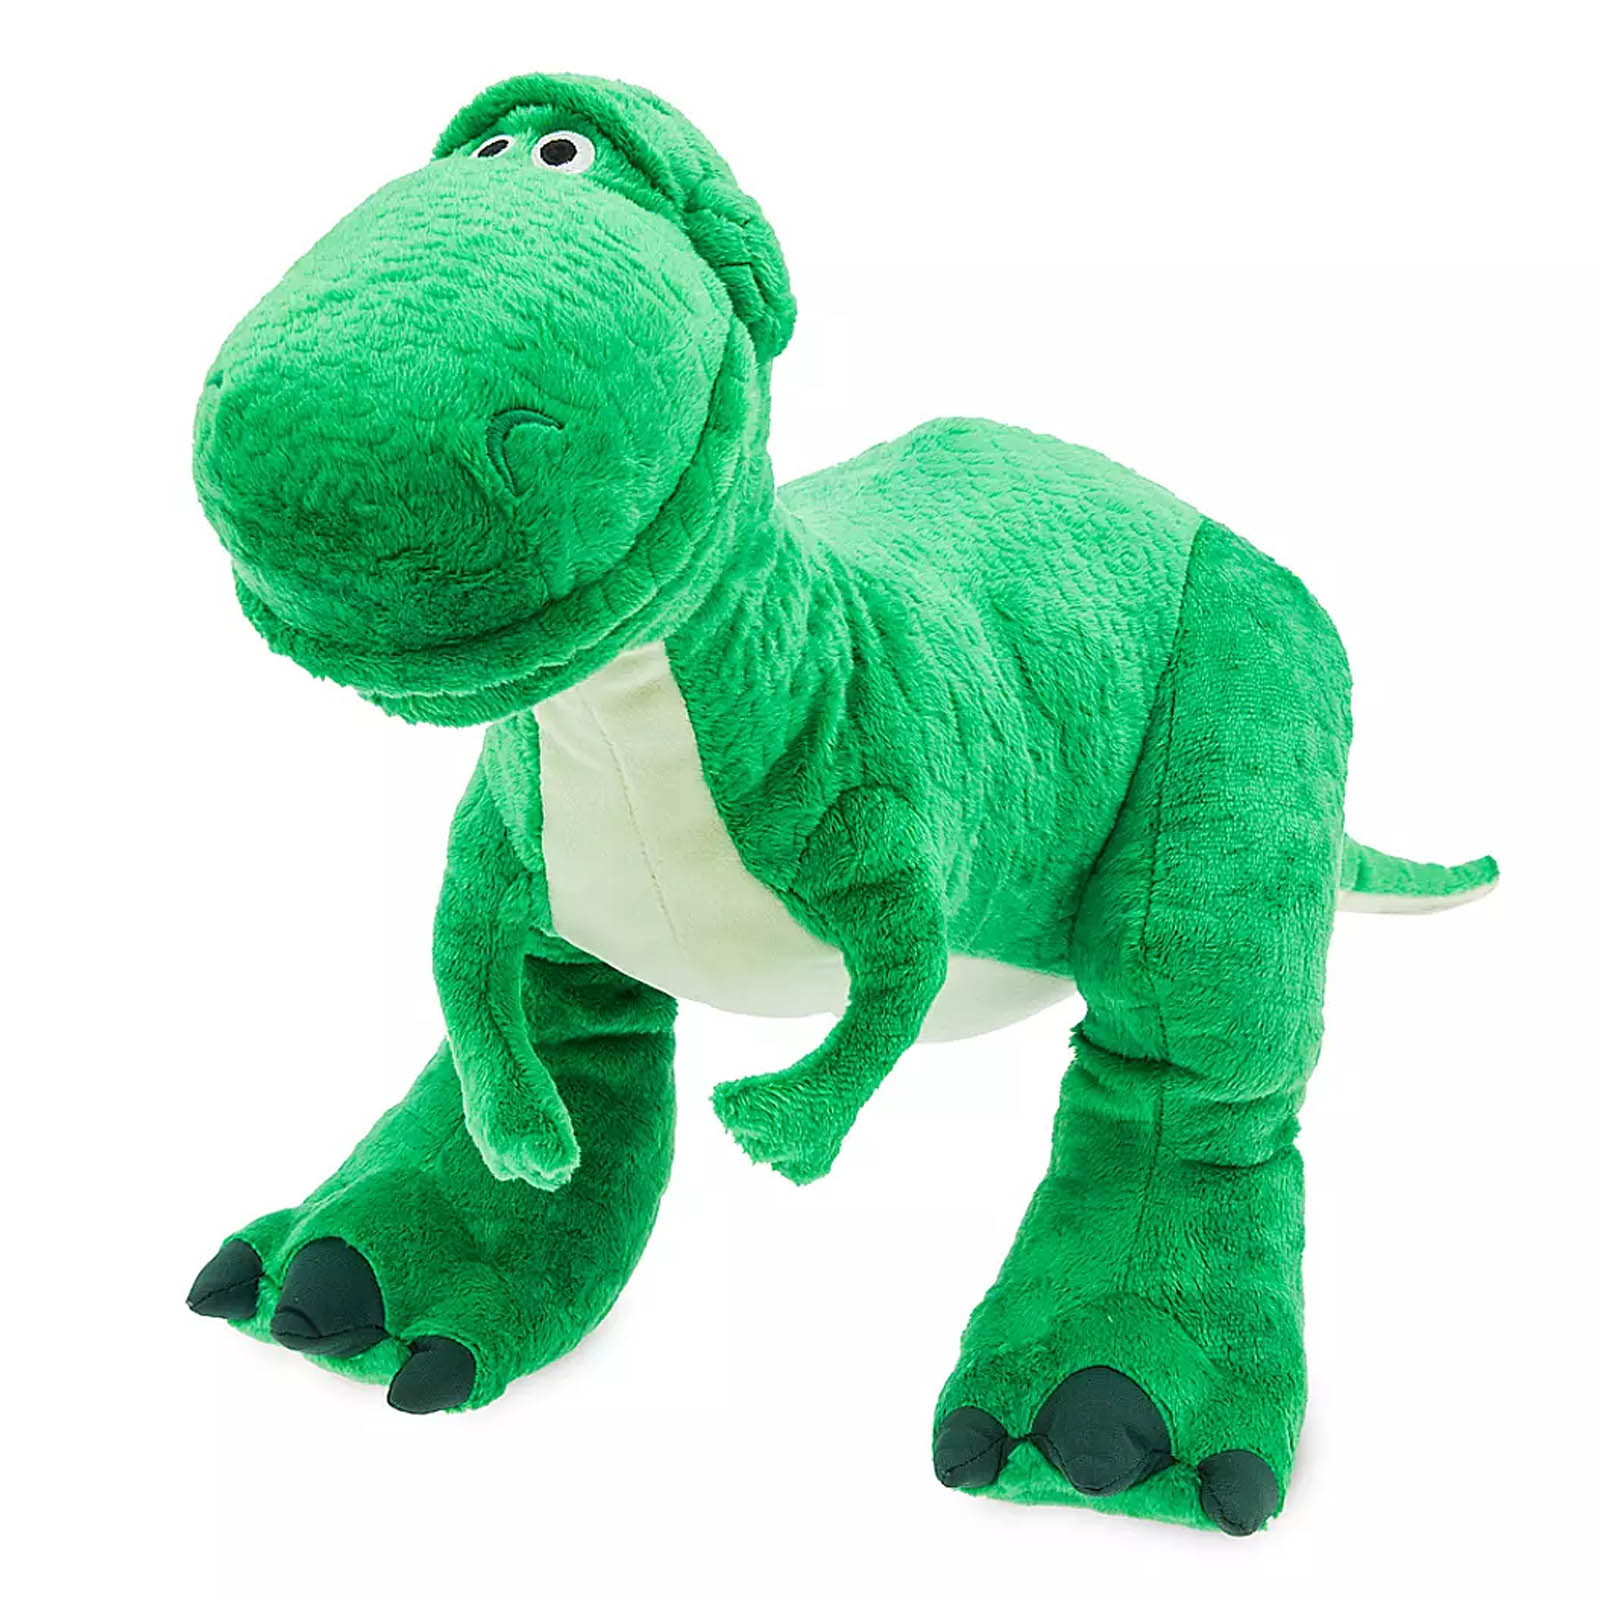 Disney Toy Story 4 Large Plush Rex Dinosaur Soft Toy 37cm